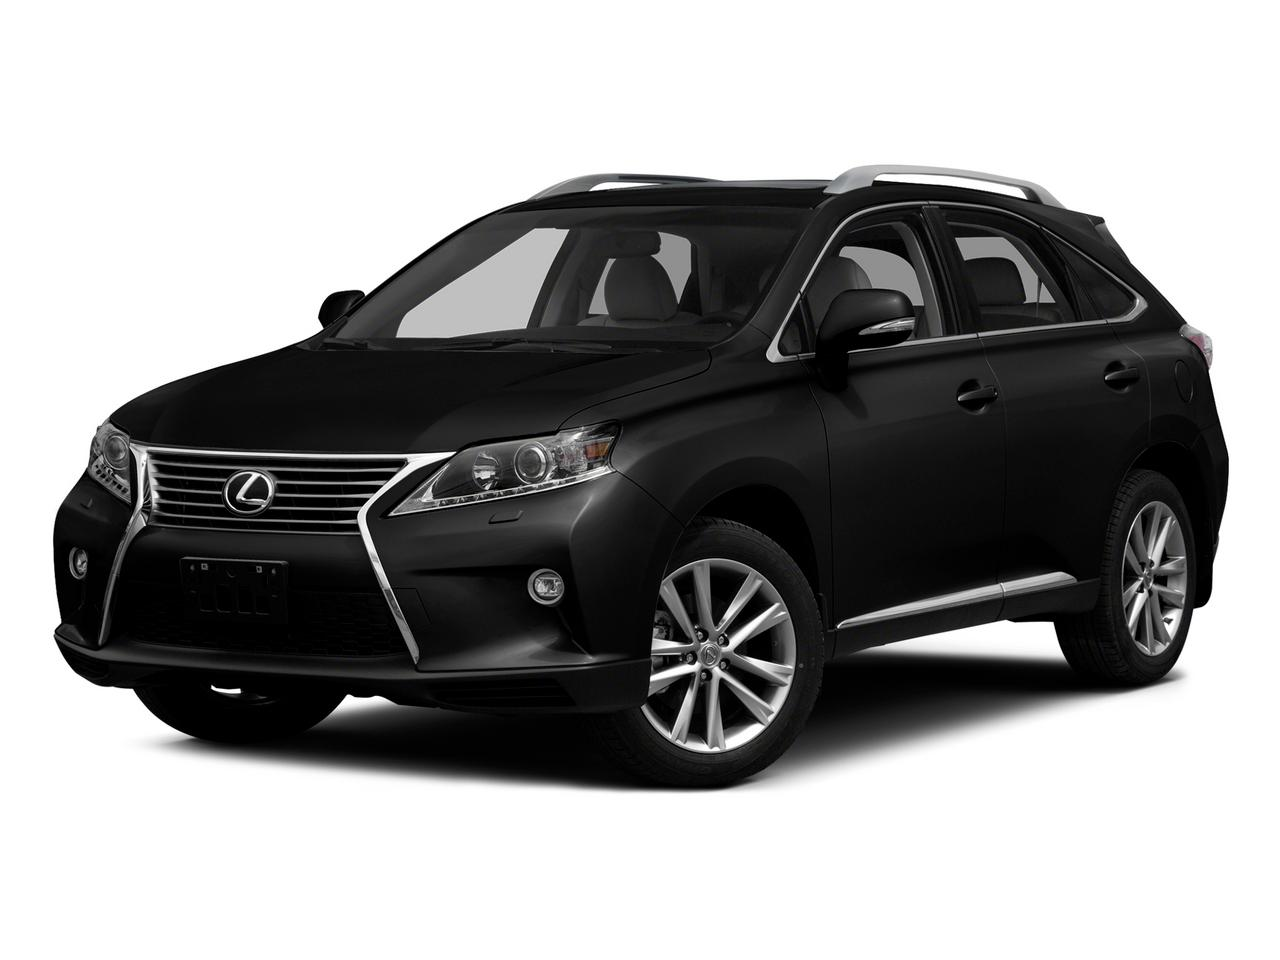 2015 Lexus RX 350 Vehicle Photo in Baton Rouge, LA 70806